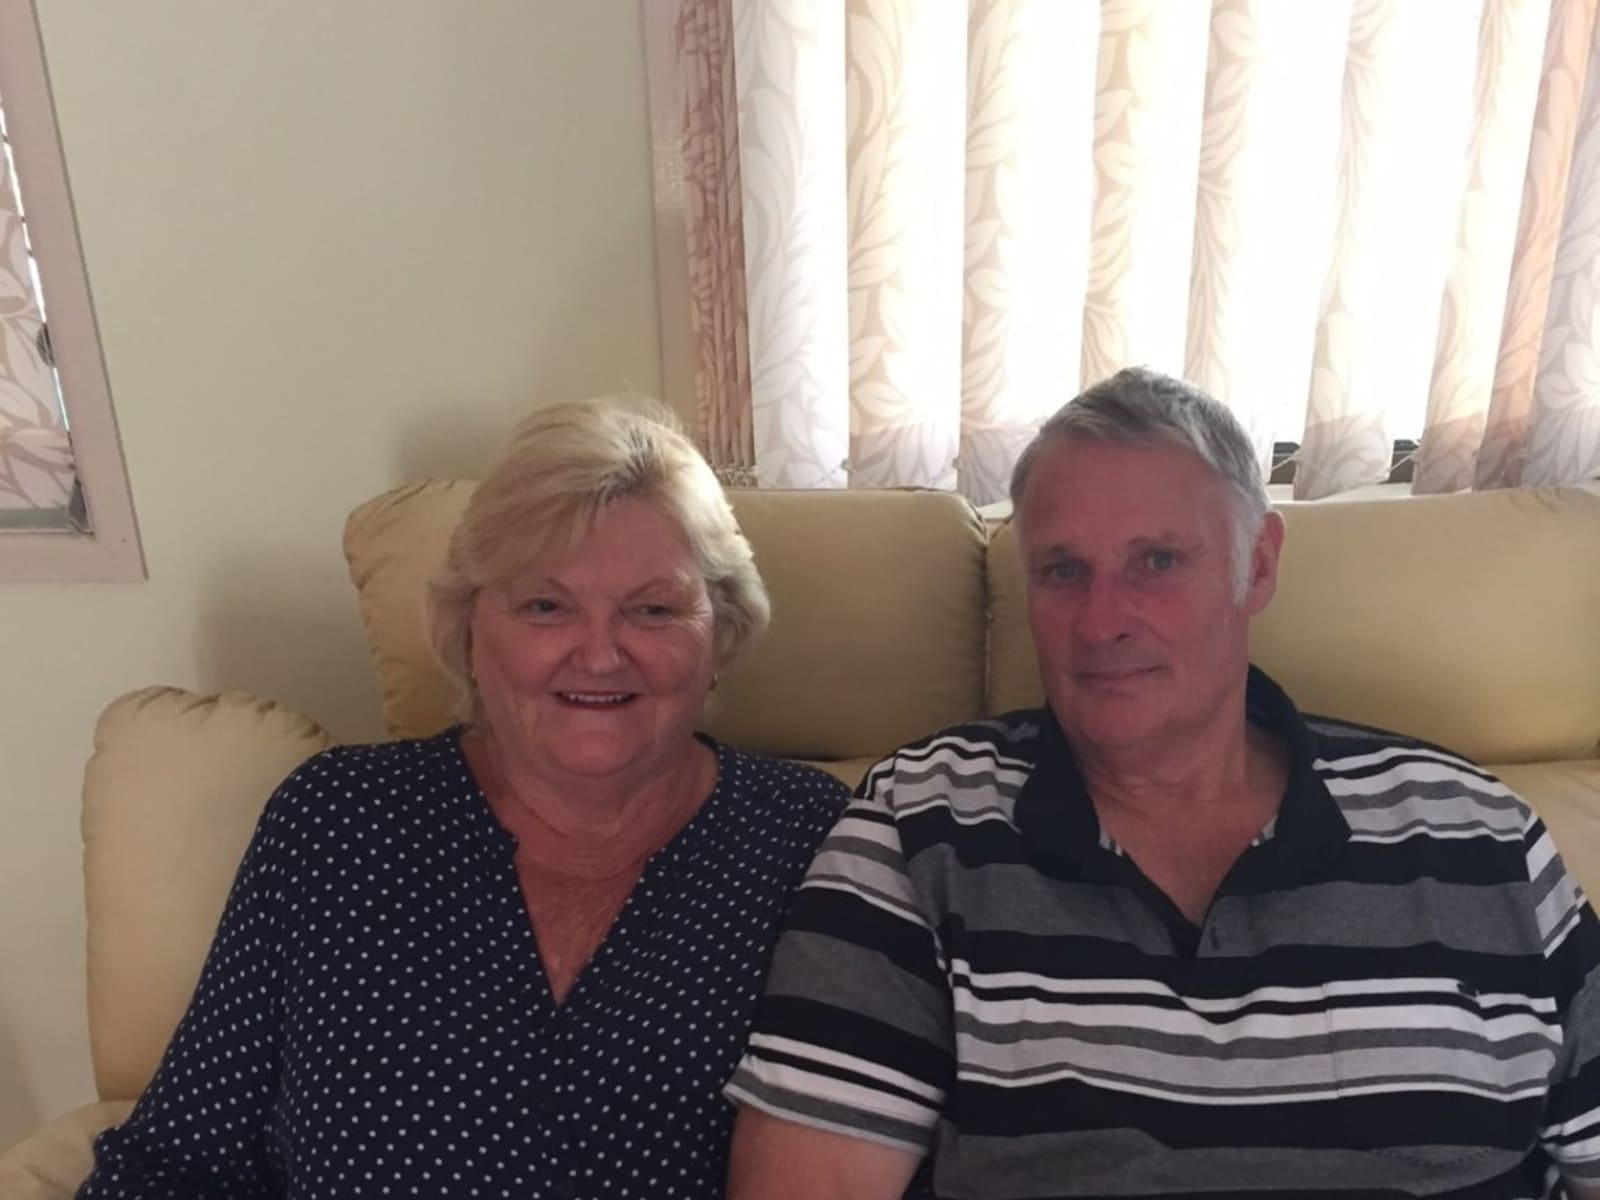 Robert  and dawn from Hervey Bay, Queensland, Australia